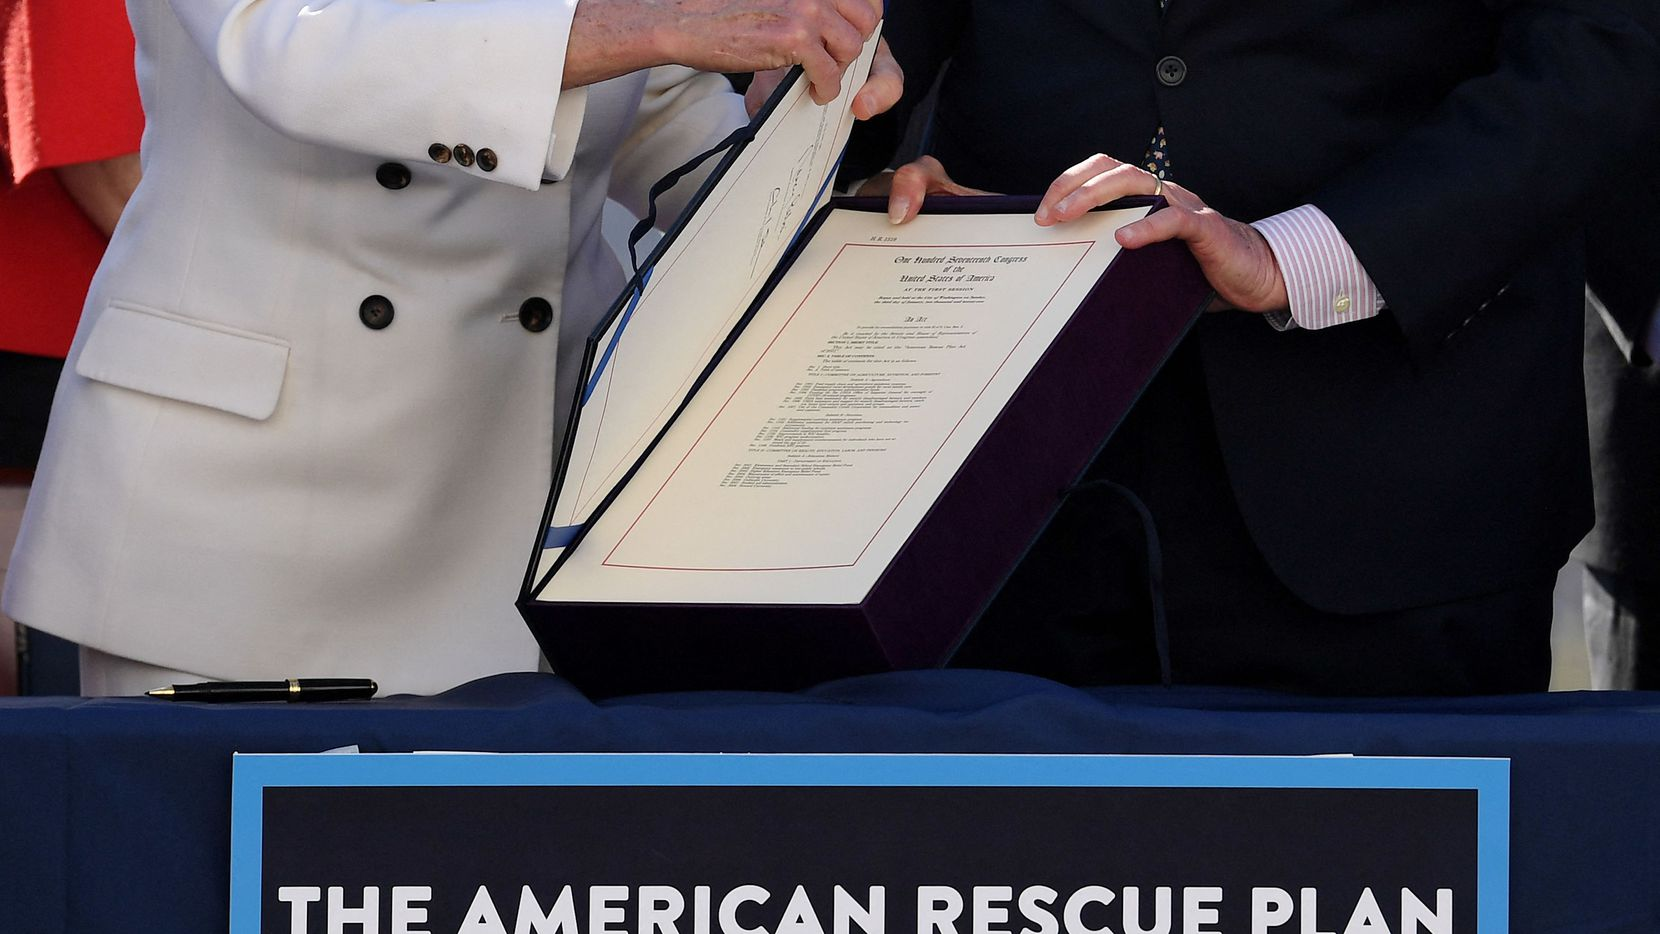 In this March 10, 2021, photo House Speaker Nancy Pelosi and Senate Majority Leader Chuck Schumer hold the signed American Rescue Plan Act after the House approved the $1.9 trillion Covid-19 relief plan.